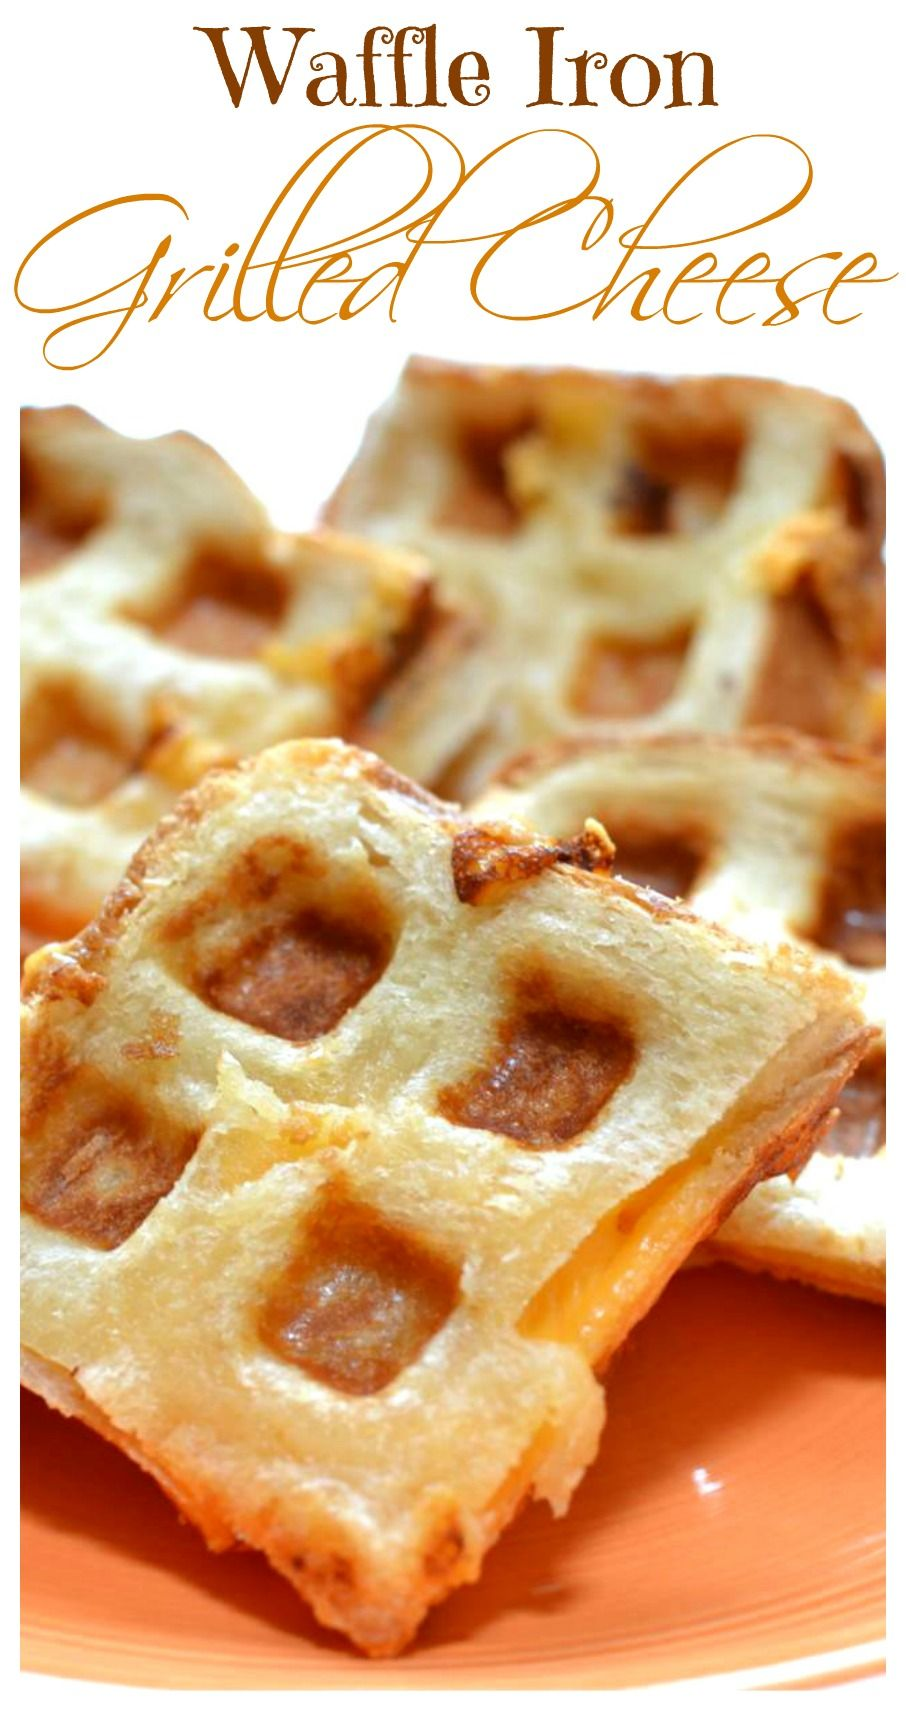 Hot, melted cheese in between fresh bread cooked to golden-brown perfection. Made easily right in your waffle iron!